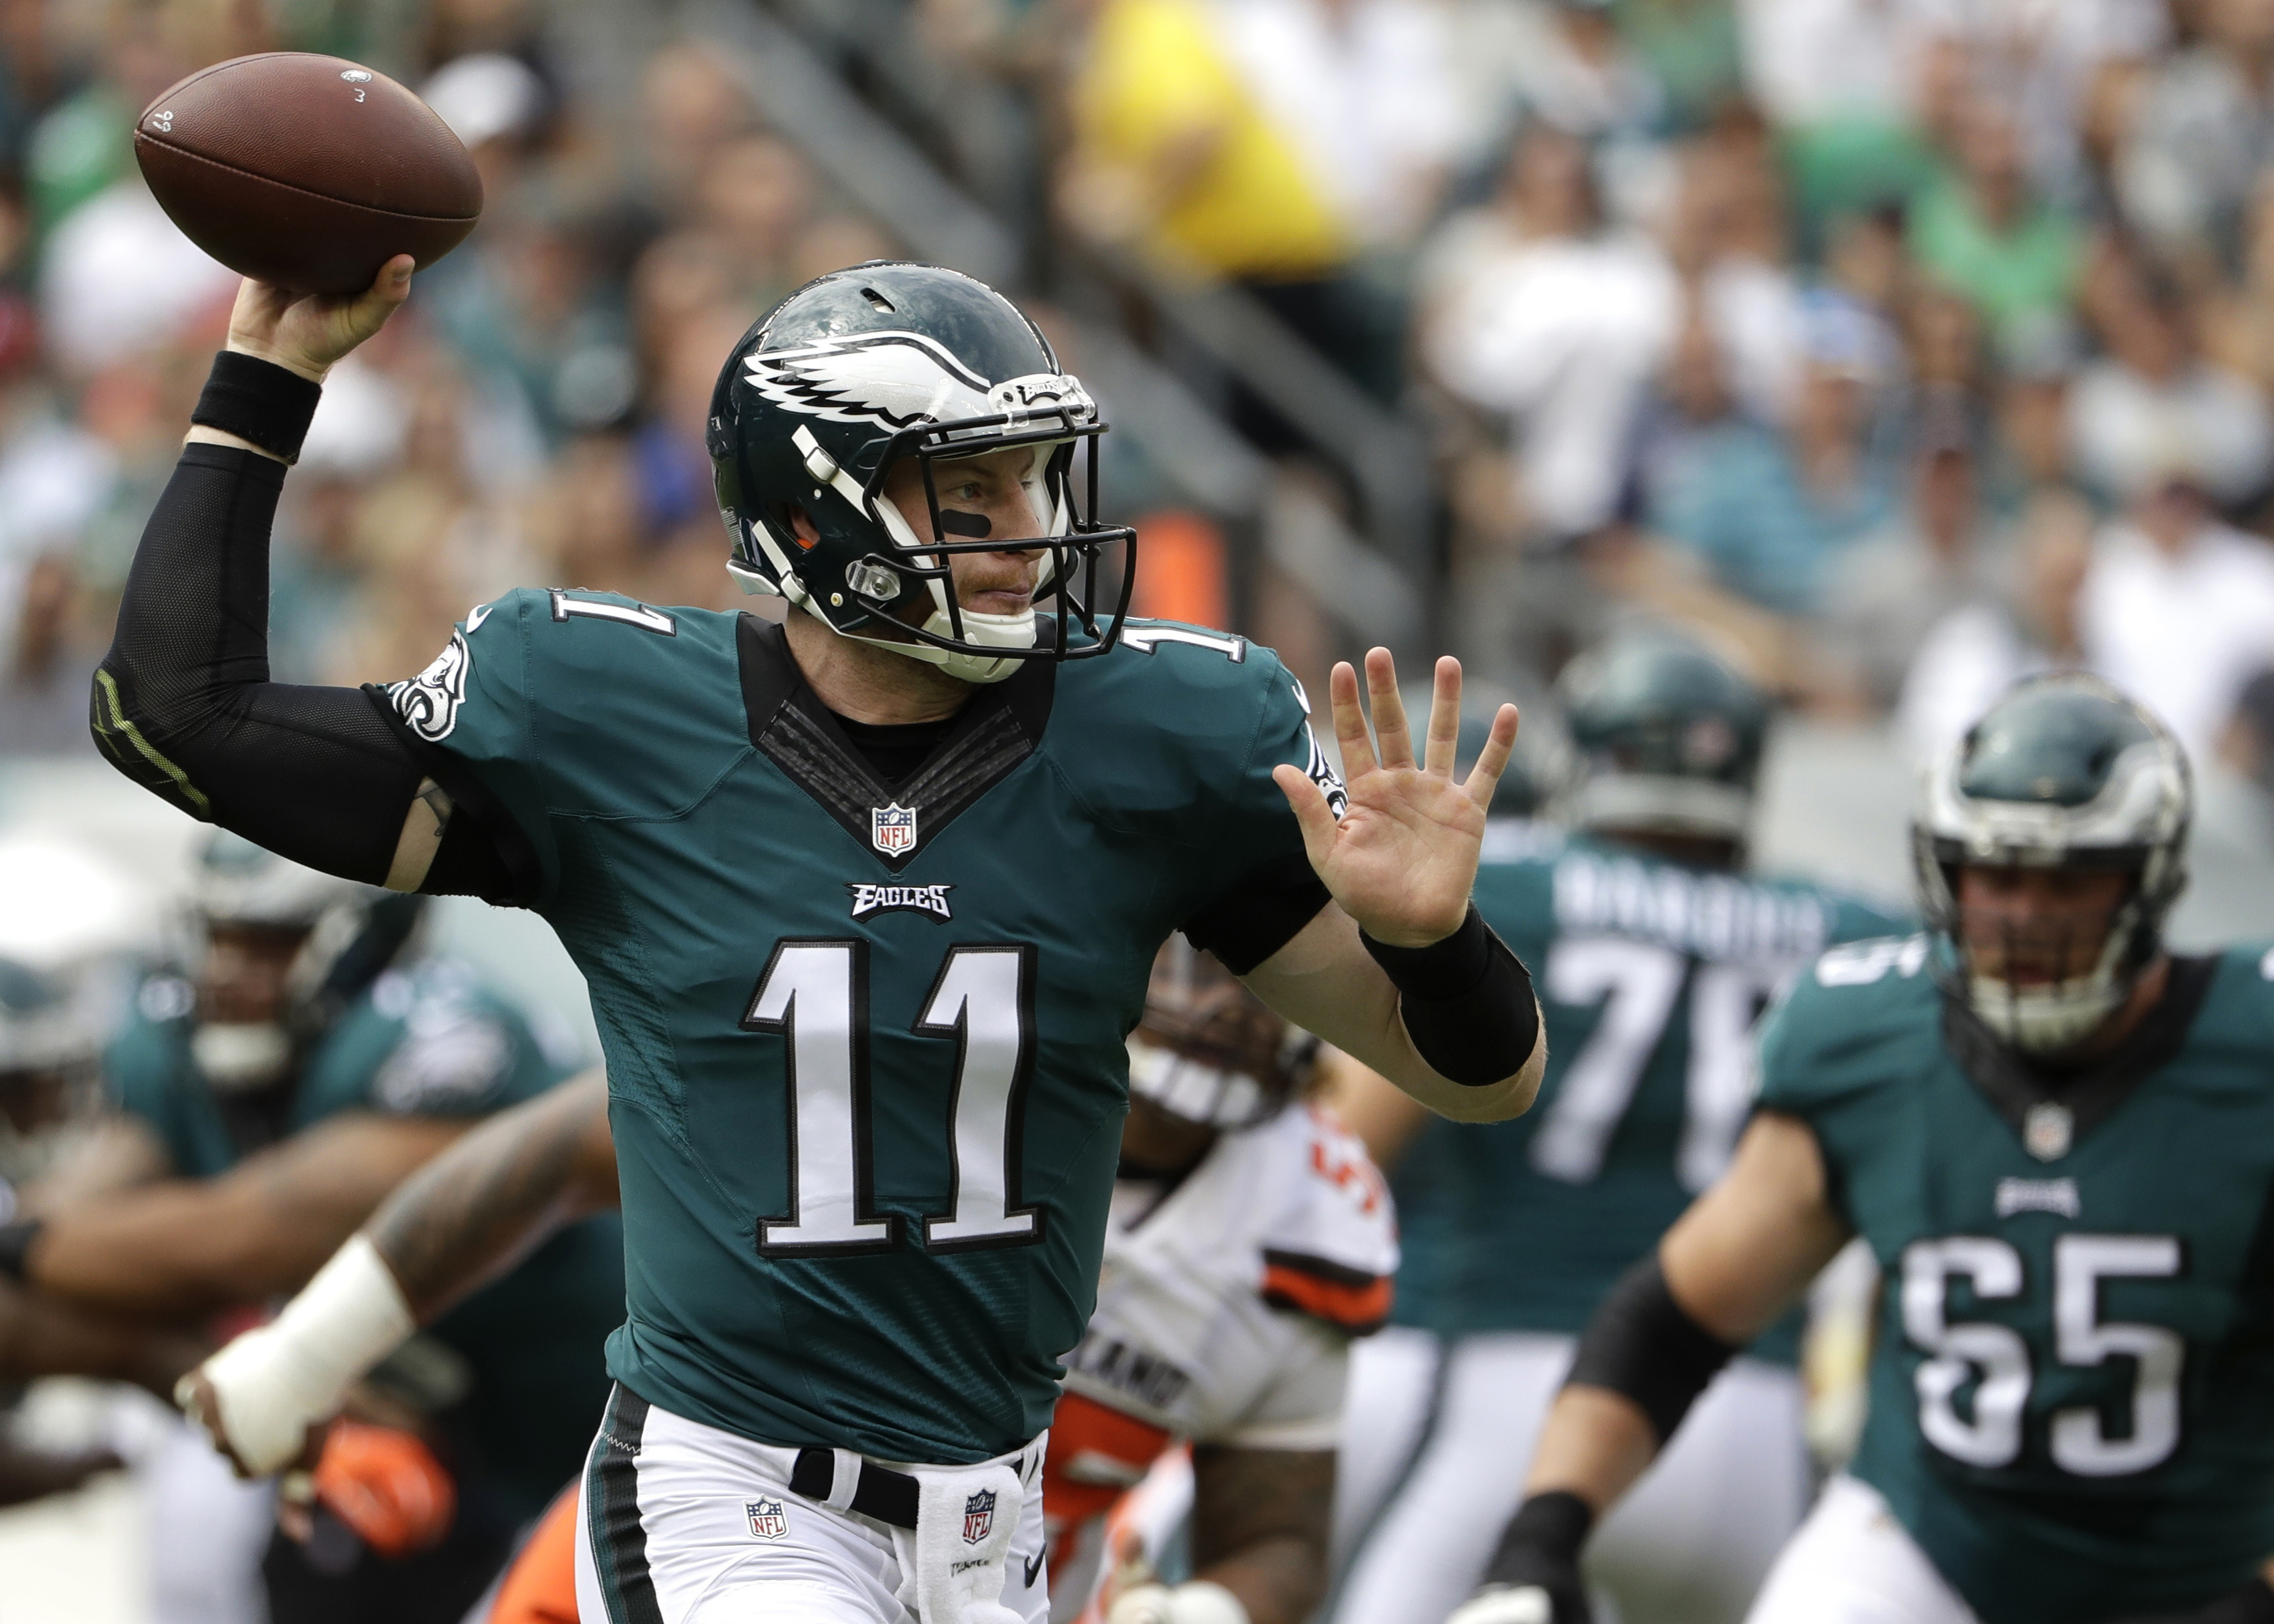 FILE - In this Sunday, Sept. 11, 2016, file photo, Philadelphia Eagles quarterback Carson Wentz passes during an NFL football game against the Cleveland Browns in Philadelphia. The No. 2 overall draft pick, Wentz will try to build on an impressive debut w